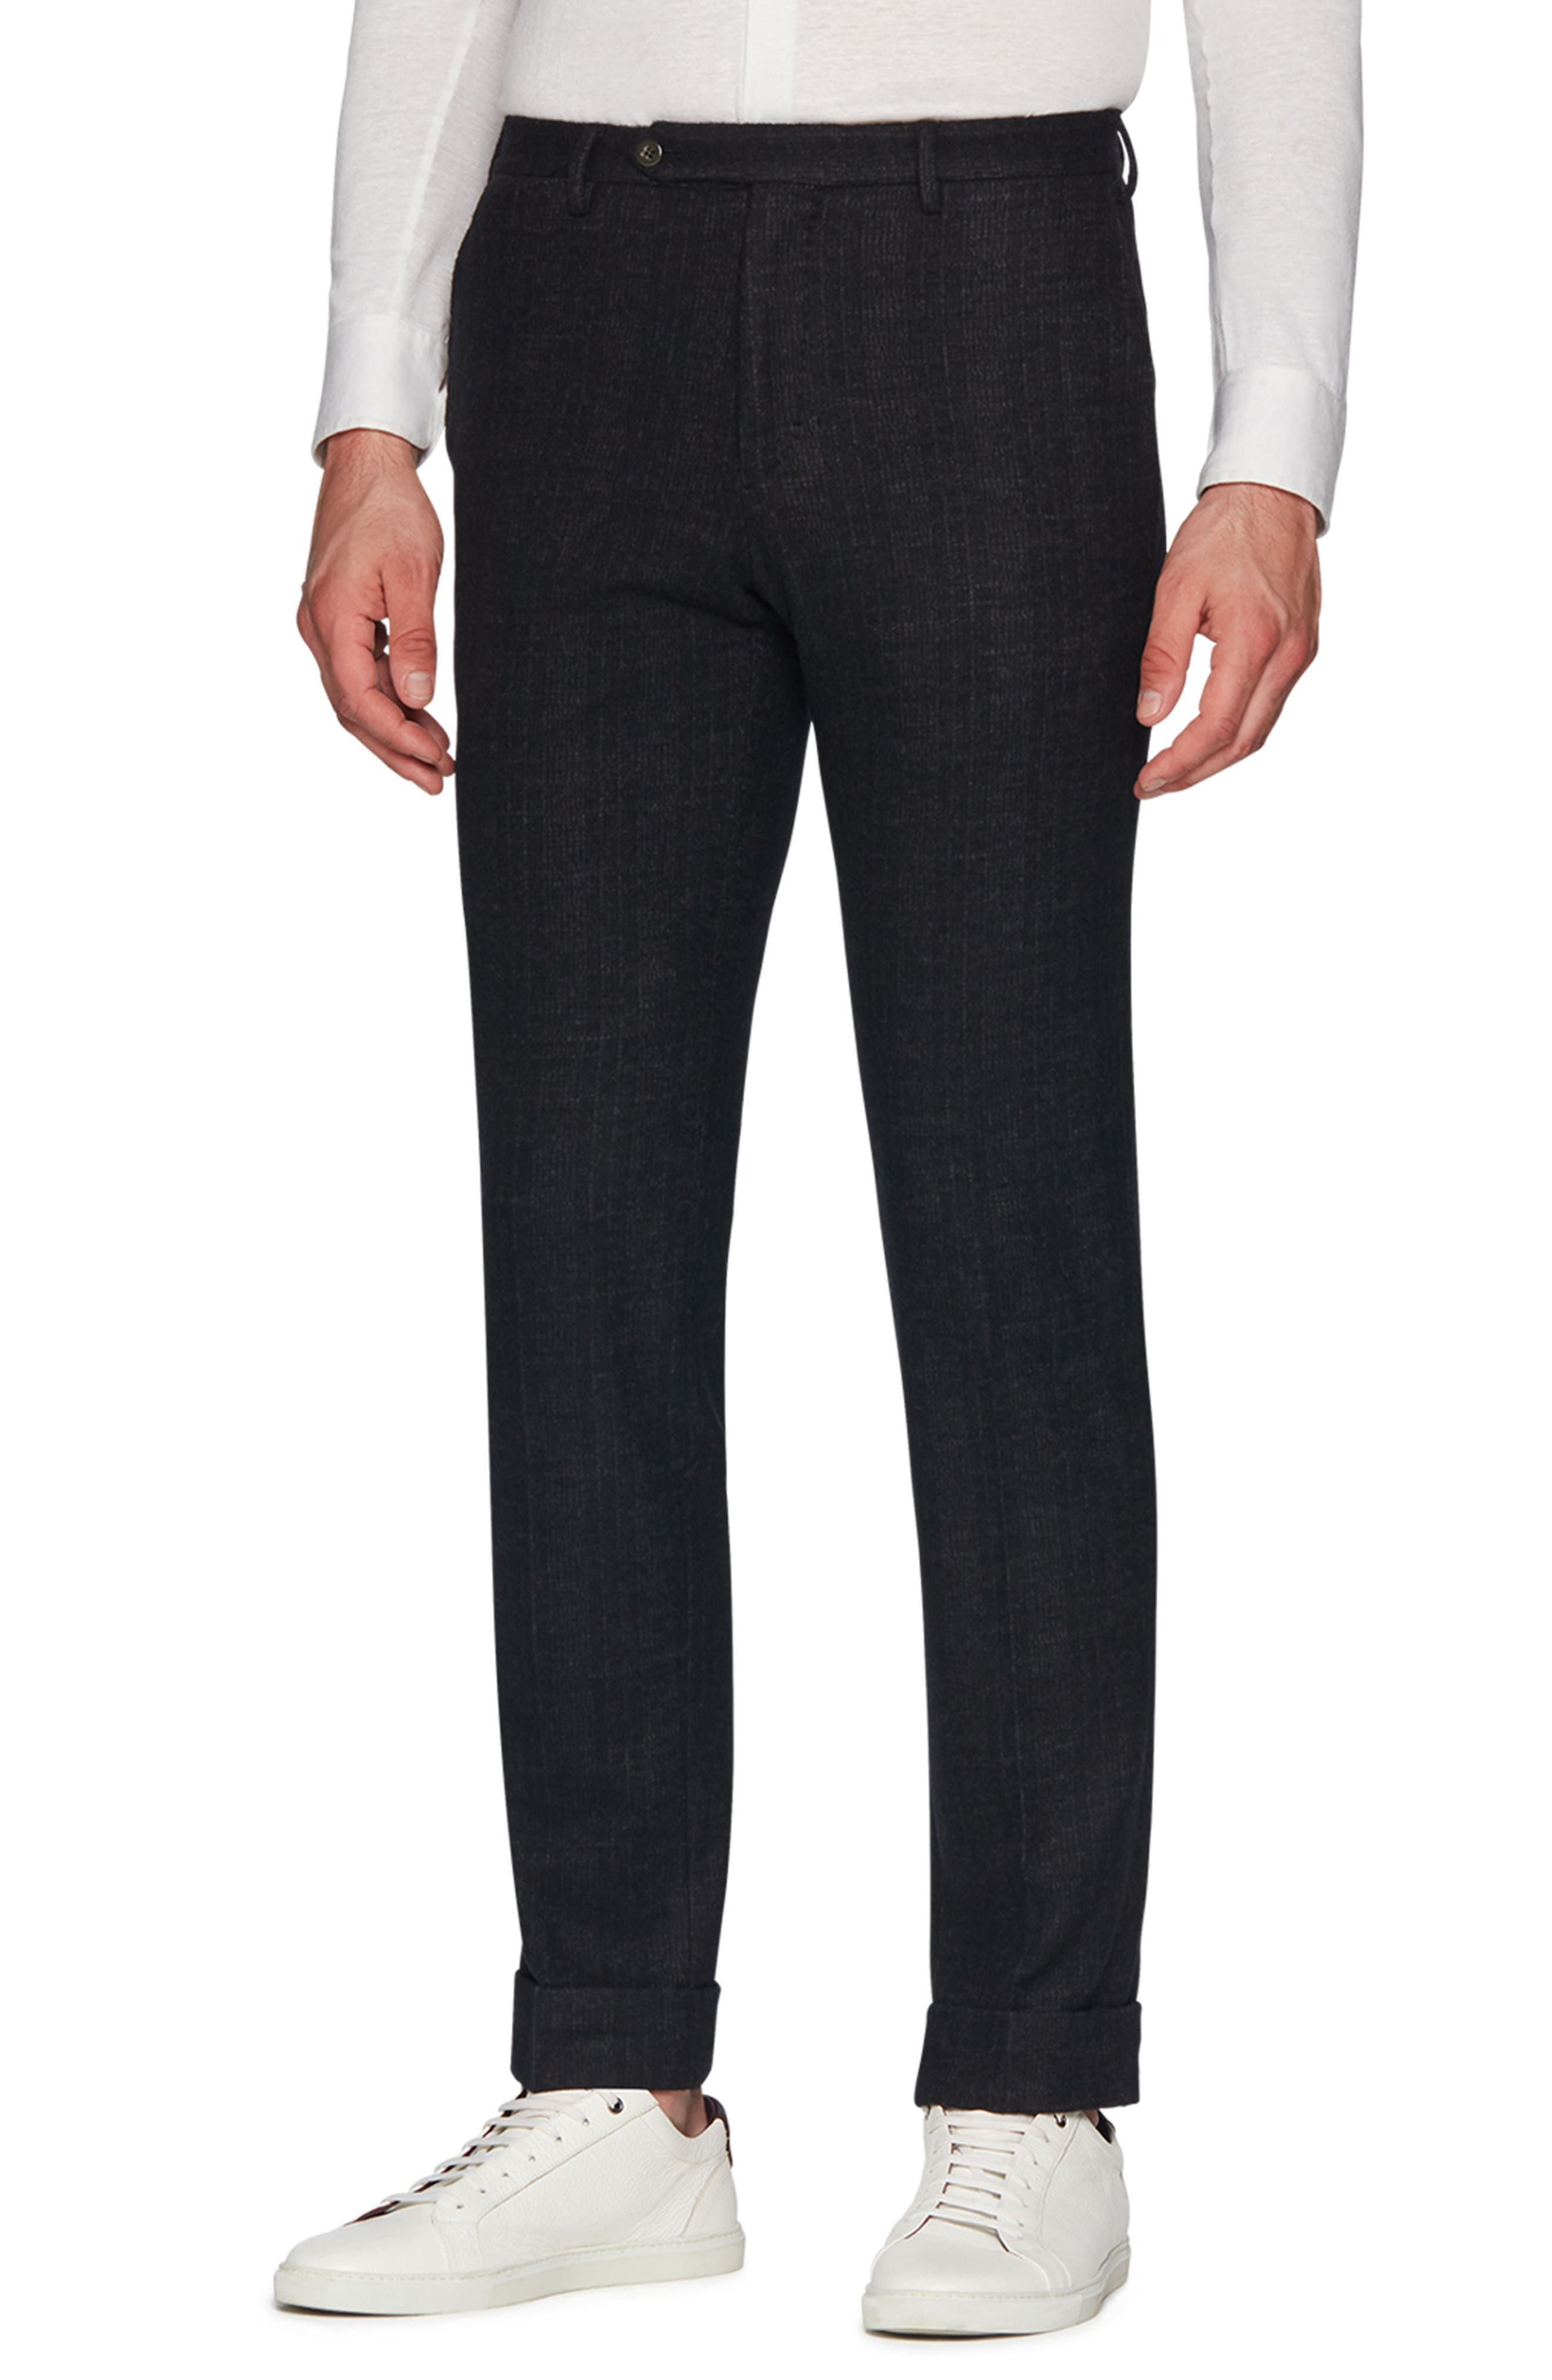 Josh Wool Blend Jersey Trousers,                             Main thumbnail 1, color,                             CHARCOAL